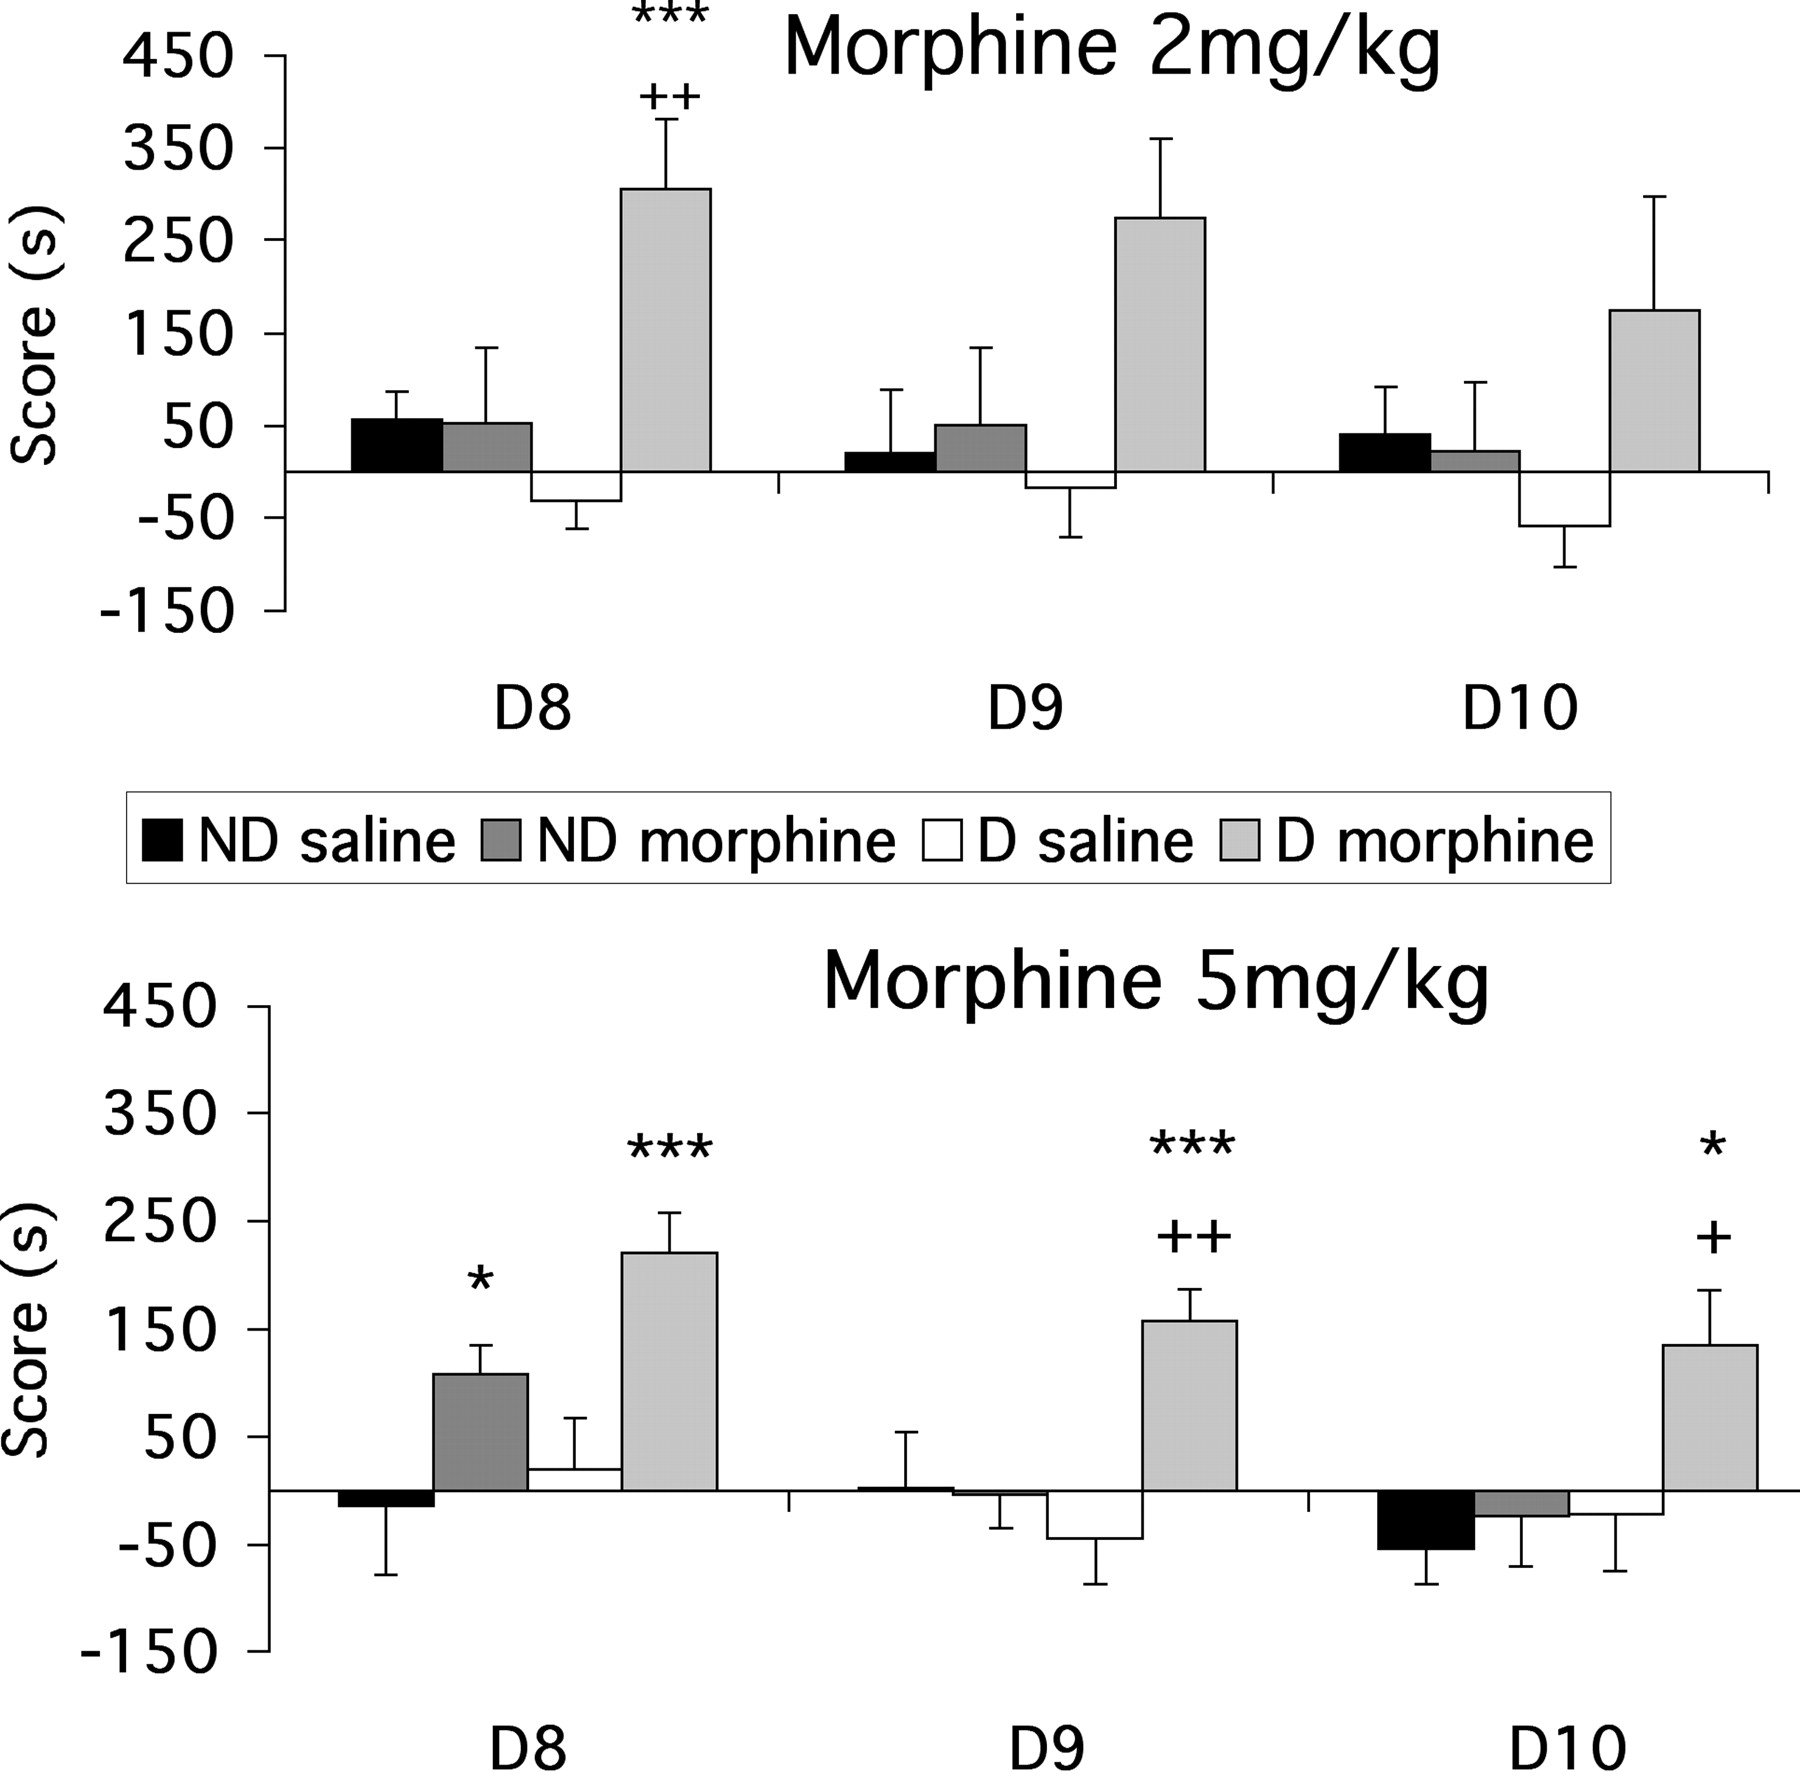 Maternal Deprivation Increases Vulnerability to Morphine